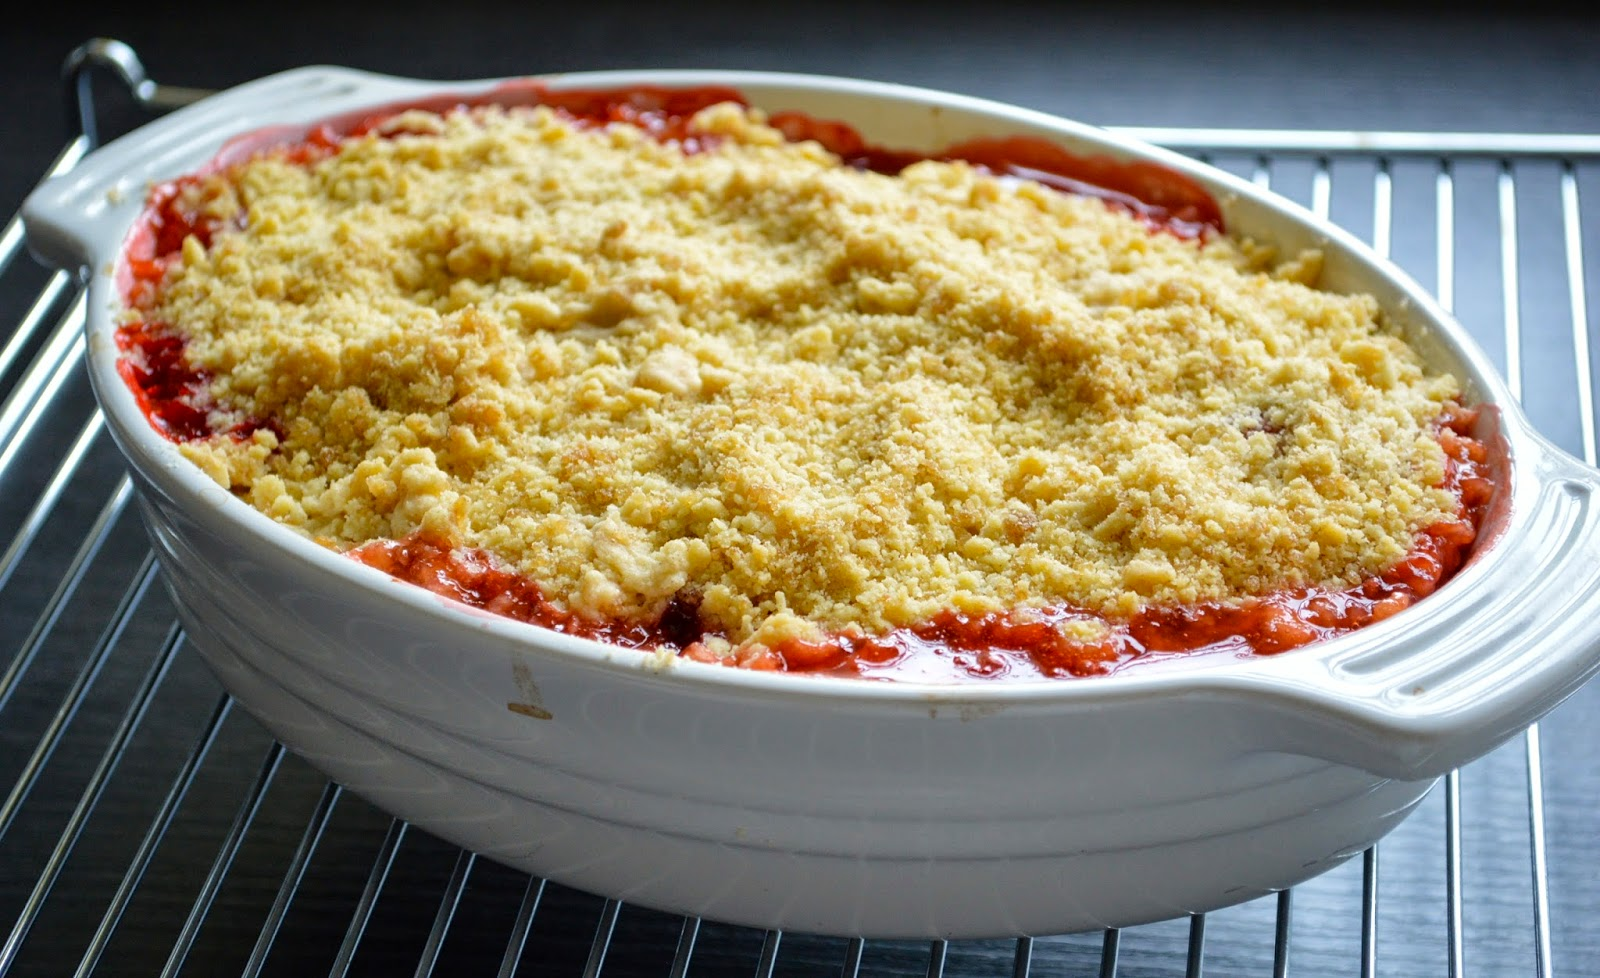 ... crumble is strawberries and rhubarb both the strawberries and rhubarb